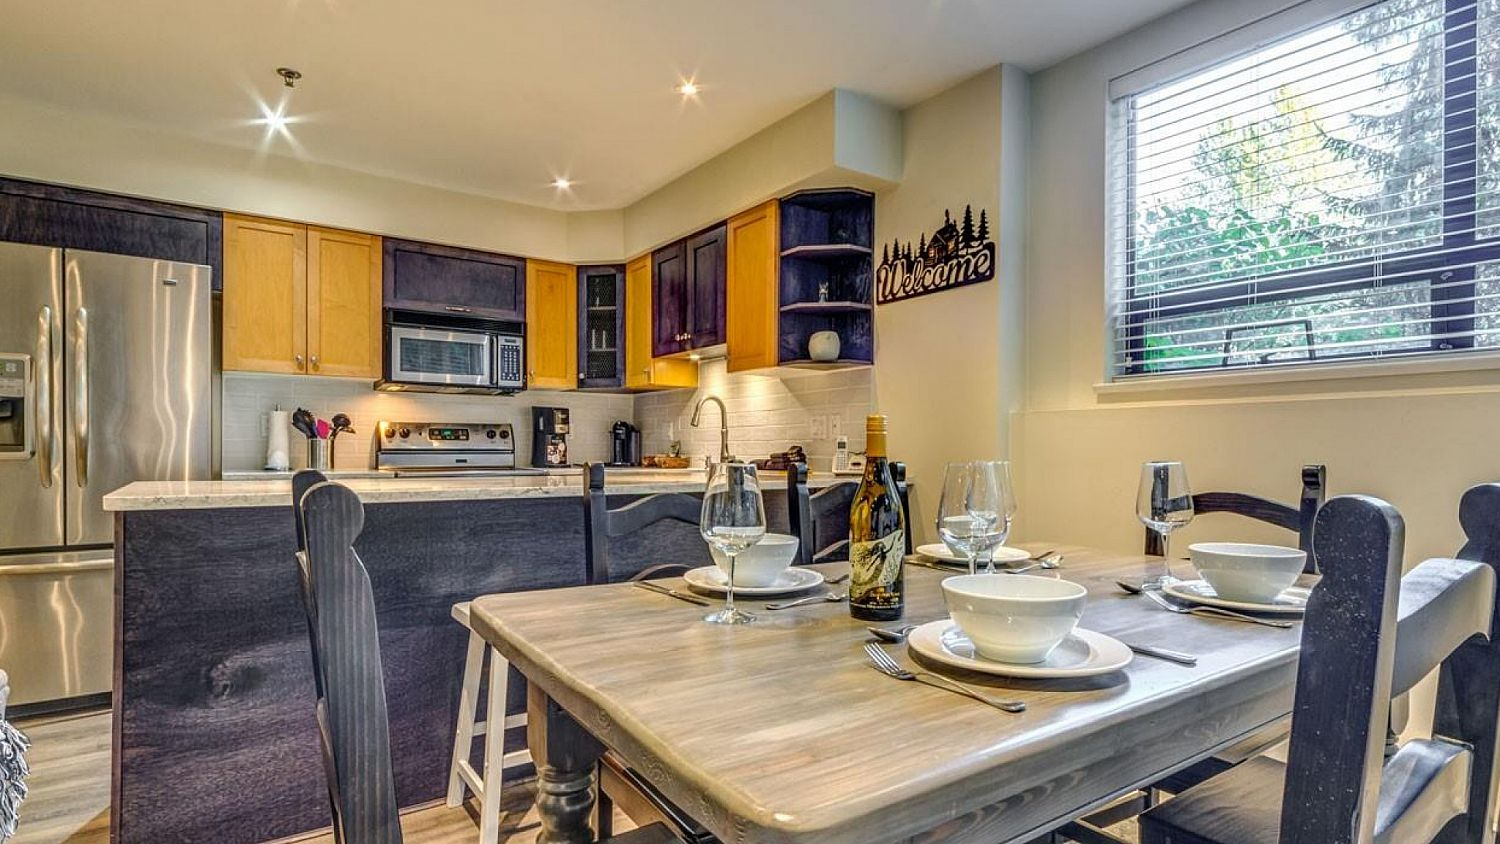 112/113 4905 SPEARHEAD PLACE